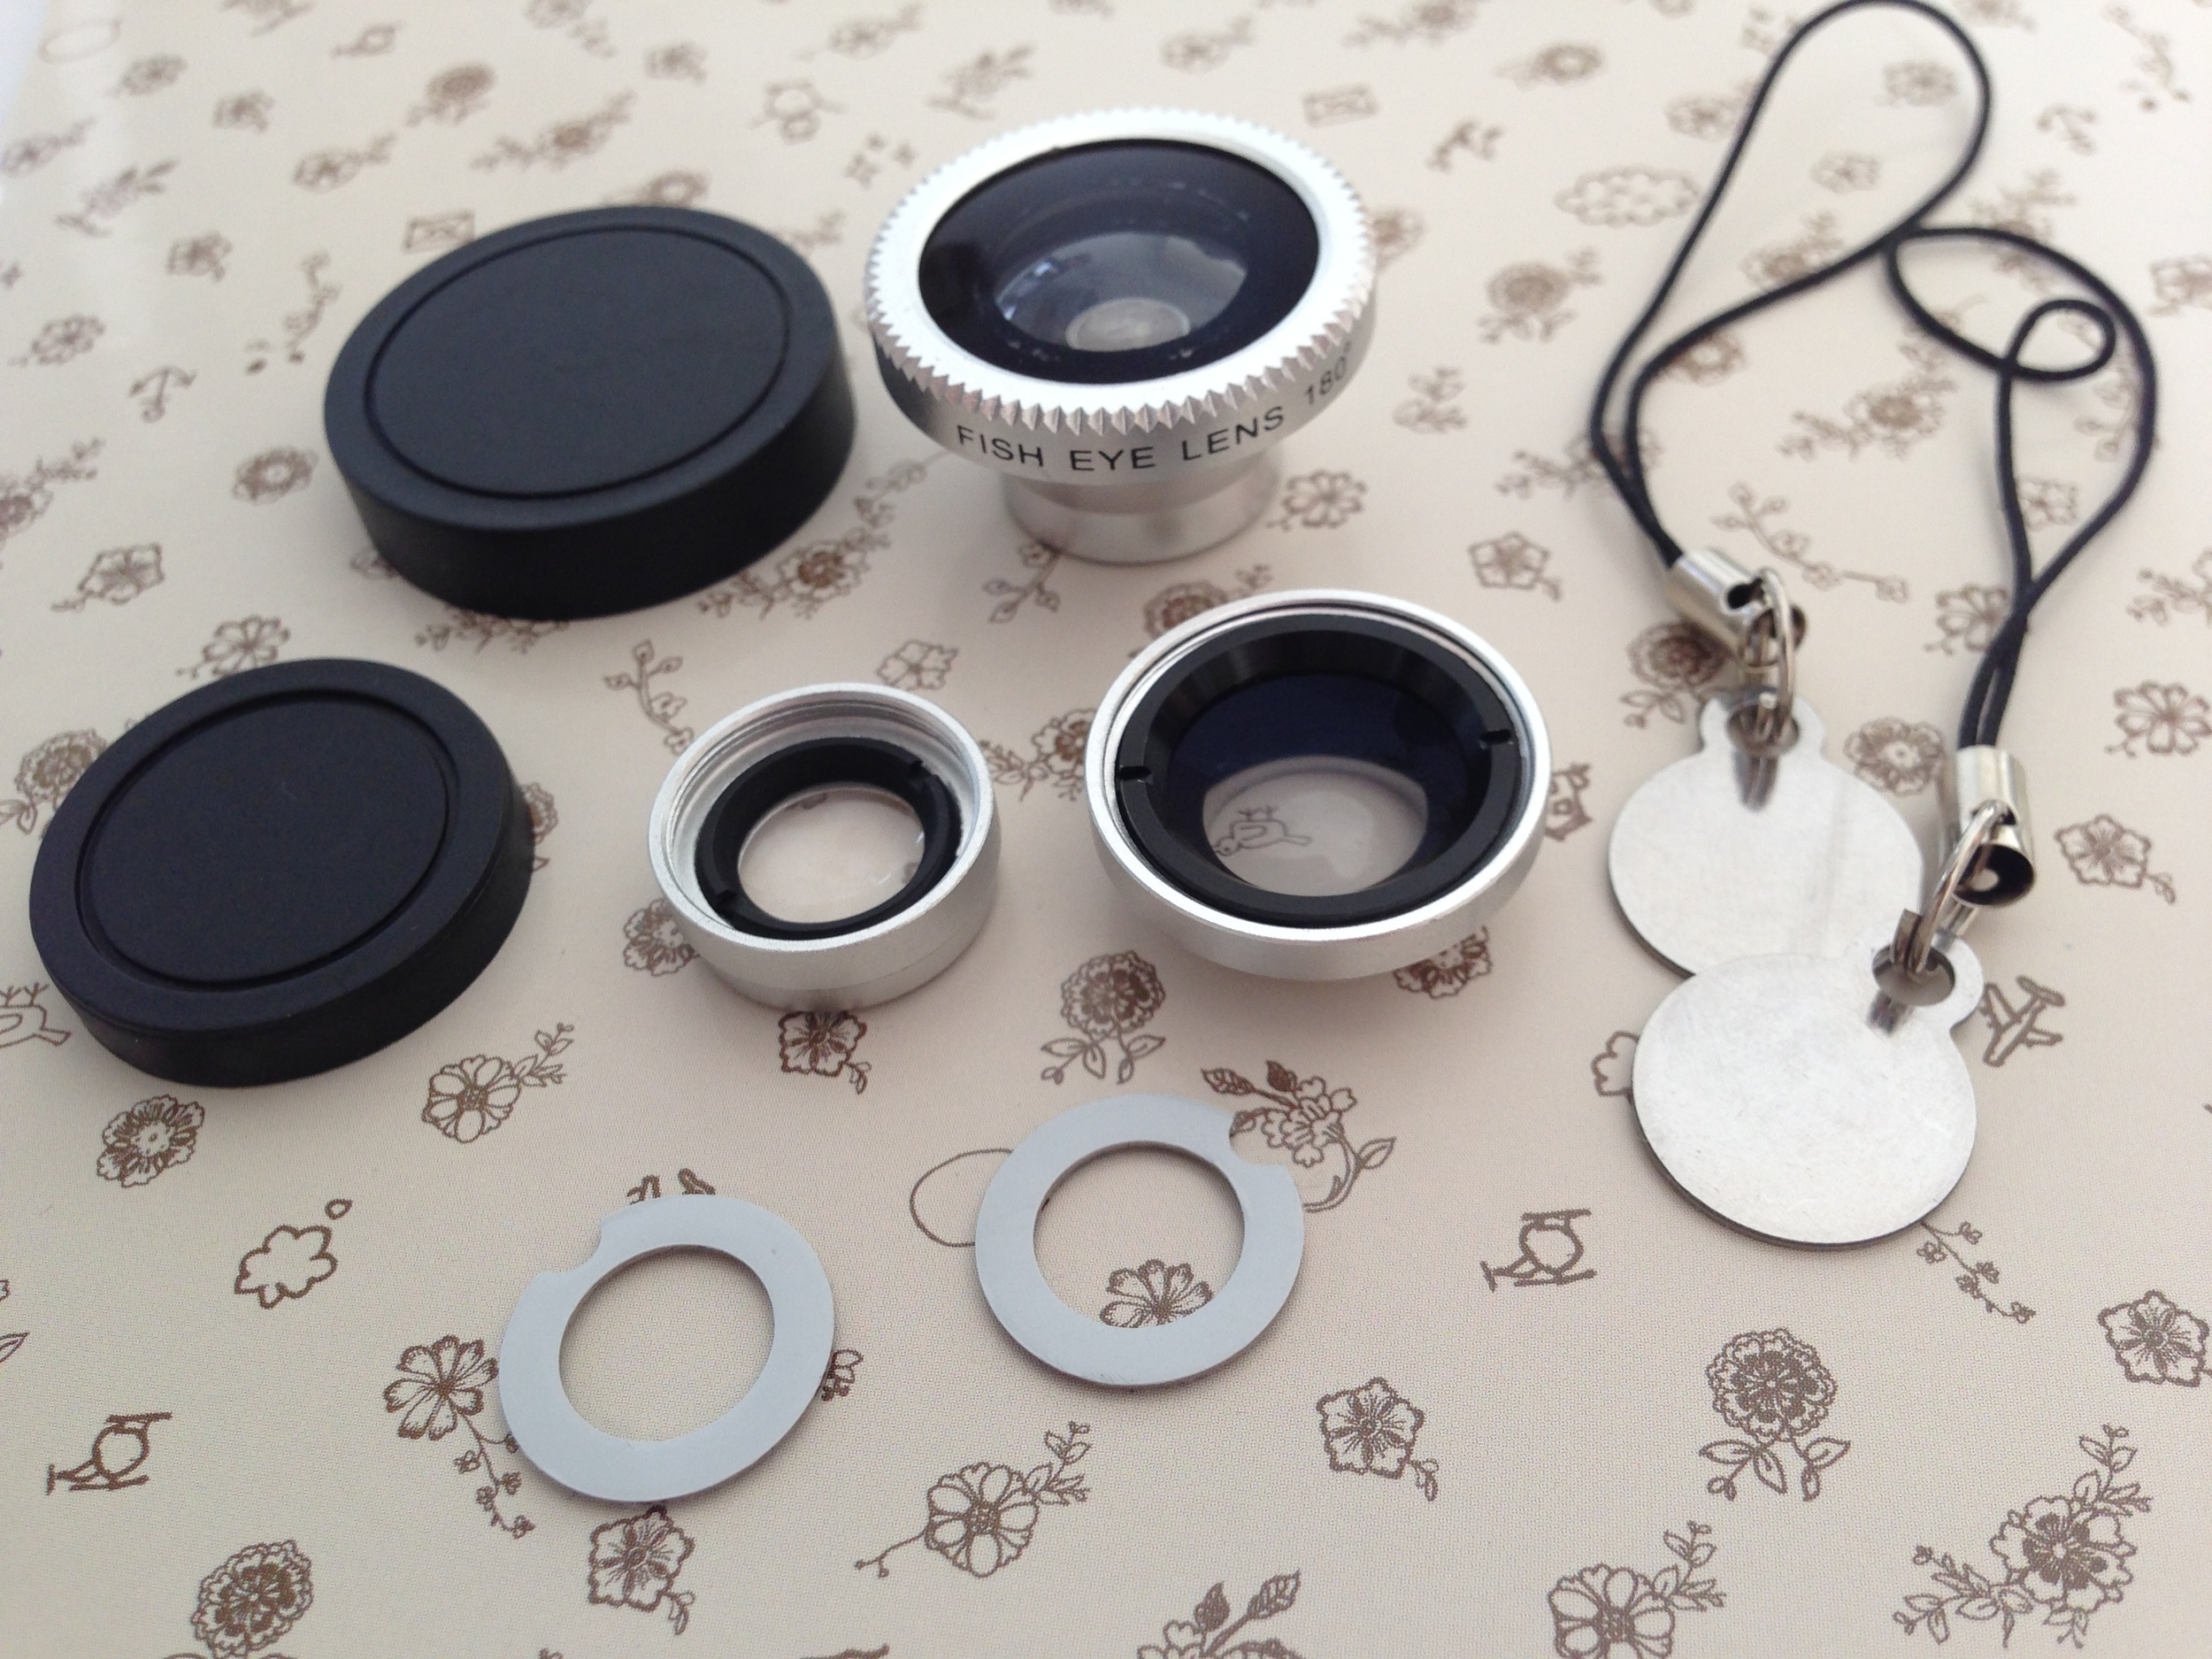 This is what you get: 3 lenses: wide angle, macro and fish eye (macro lens can be detached from wide-angle), 2 lens covers, 6 detachable magnetic rings and 2 magnetic key chains.